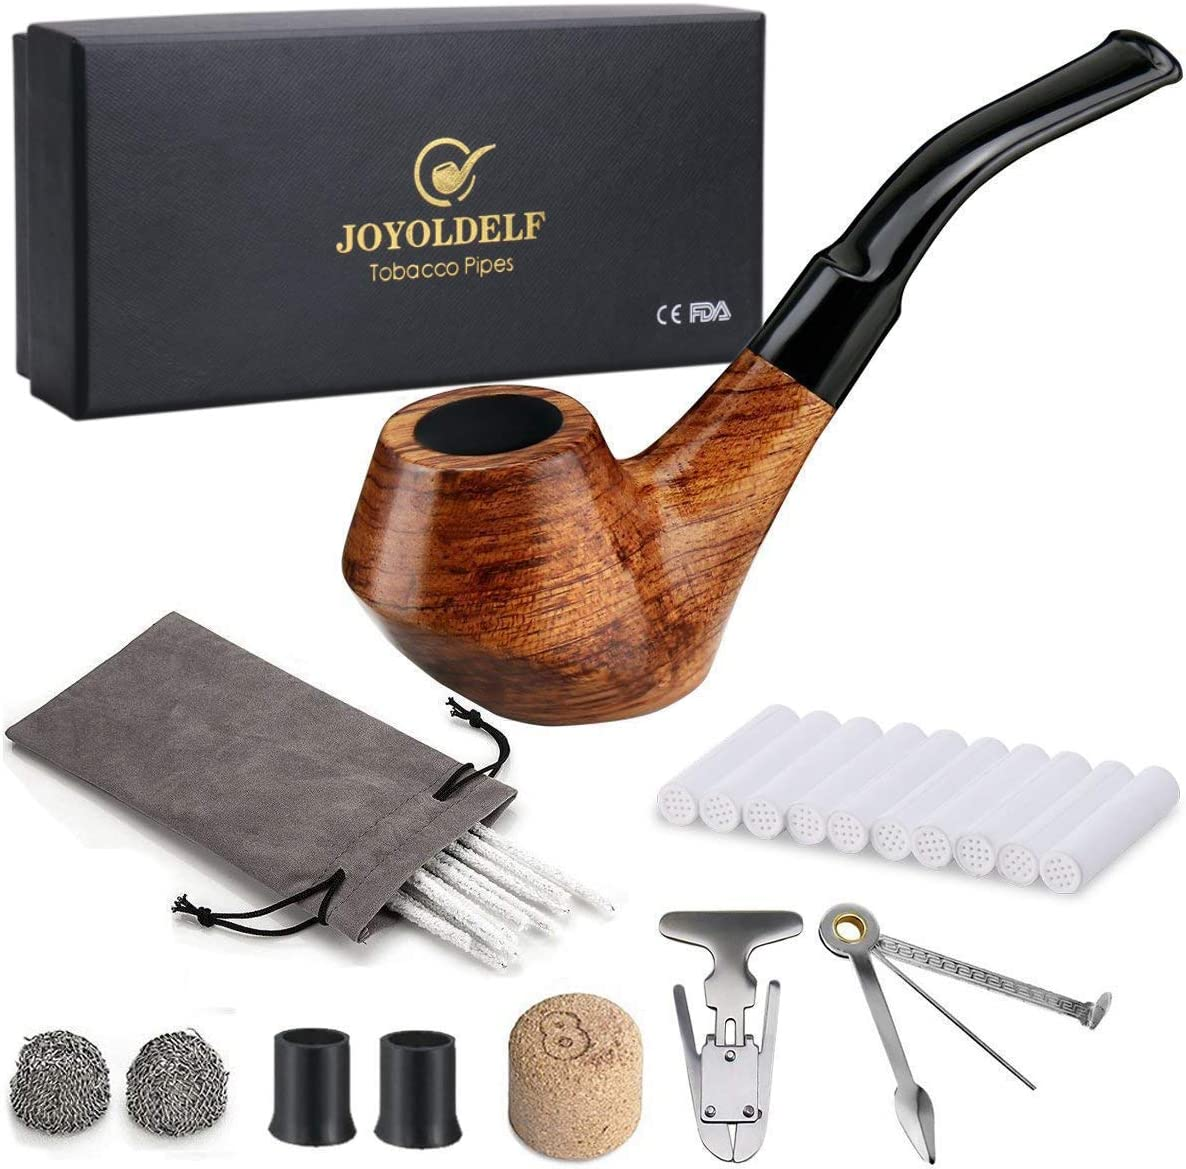 Joyoldelf Cheap mail order sales Creative Wooden Smoking Ranking integrated 1st place Pipe Box with Gift Set Rosewo